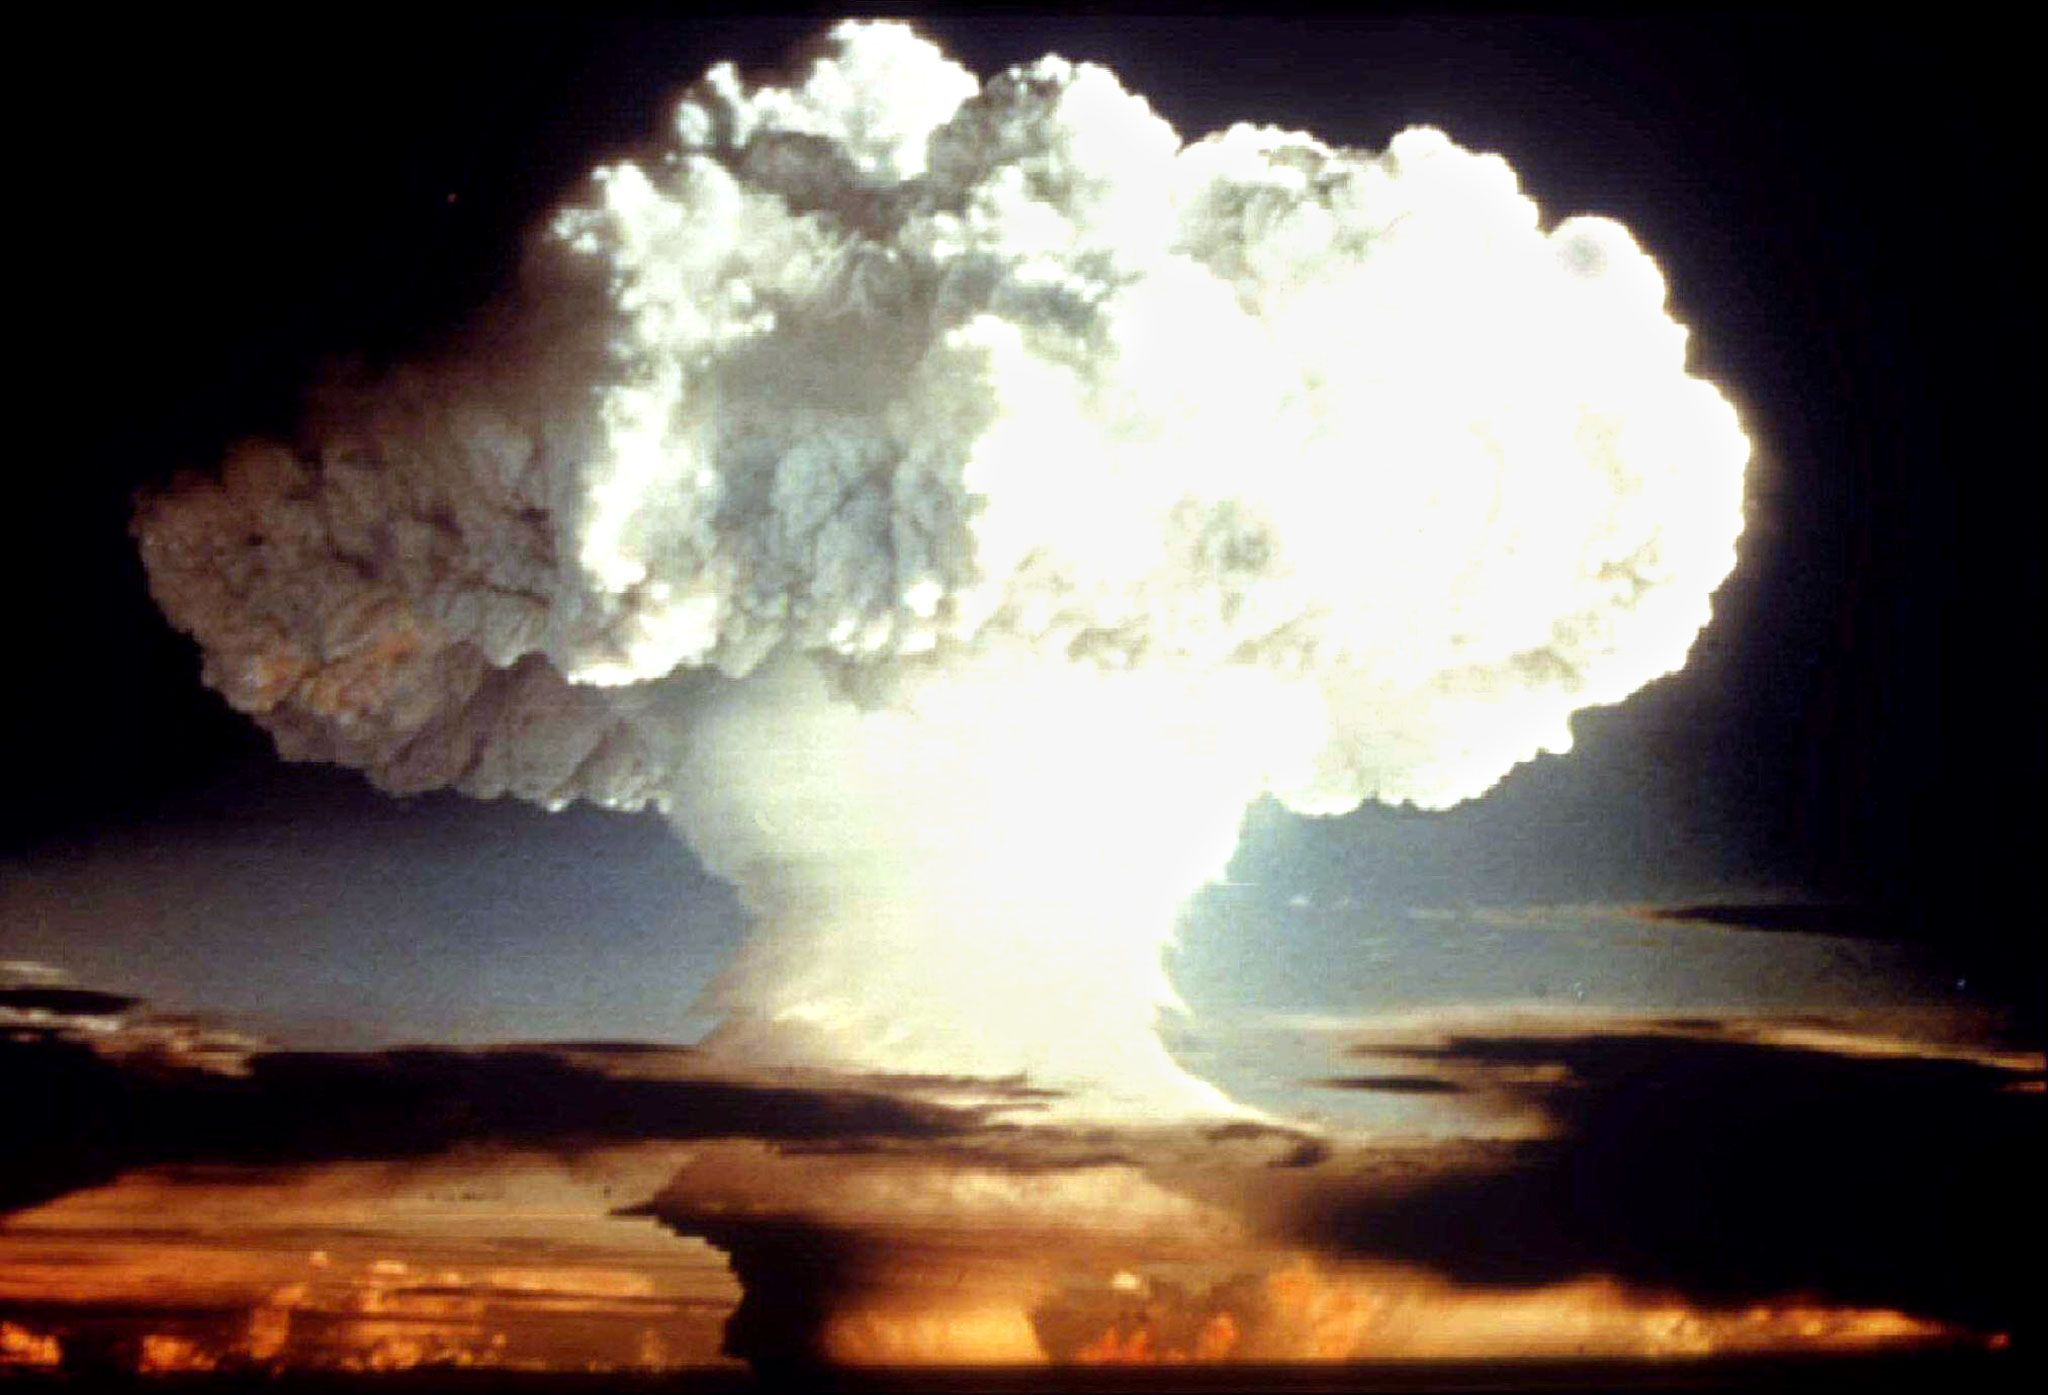 Nuclear test explosion